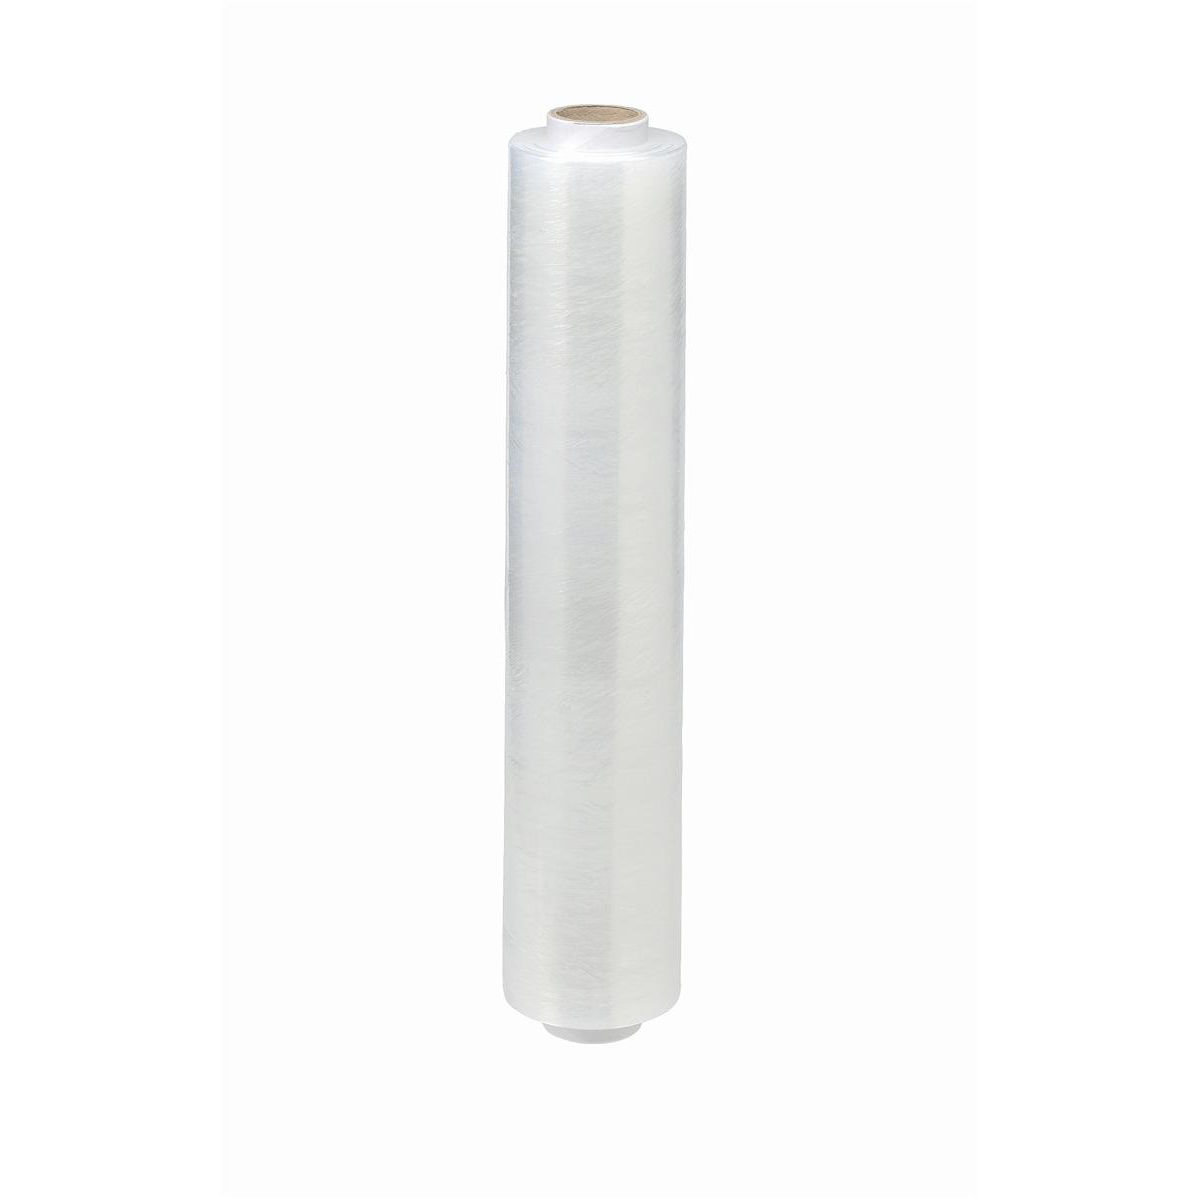 Stretch Film Blown 15 Micron 400mmx250m Clear [Pack 6]